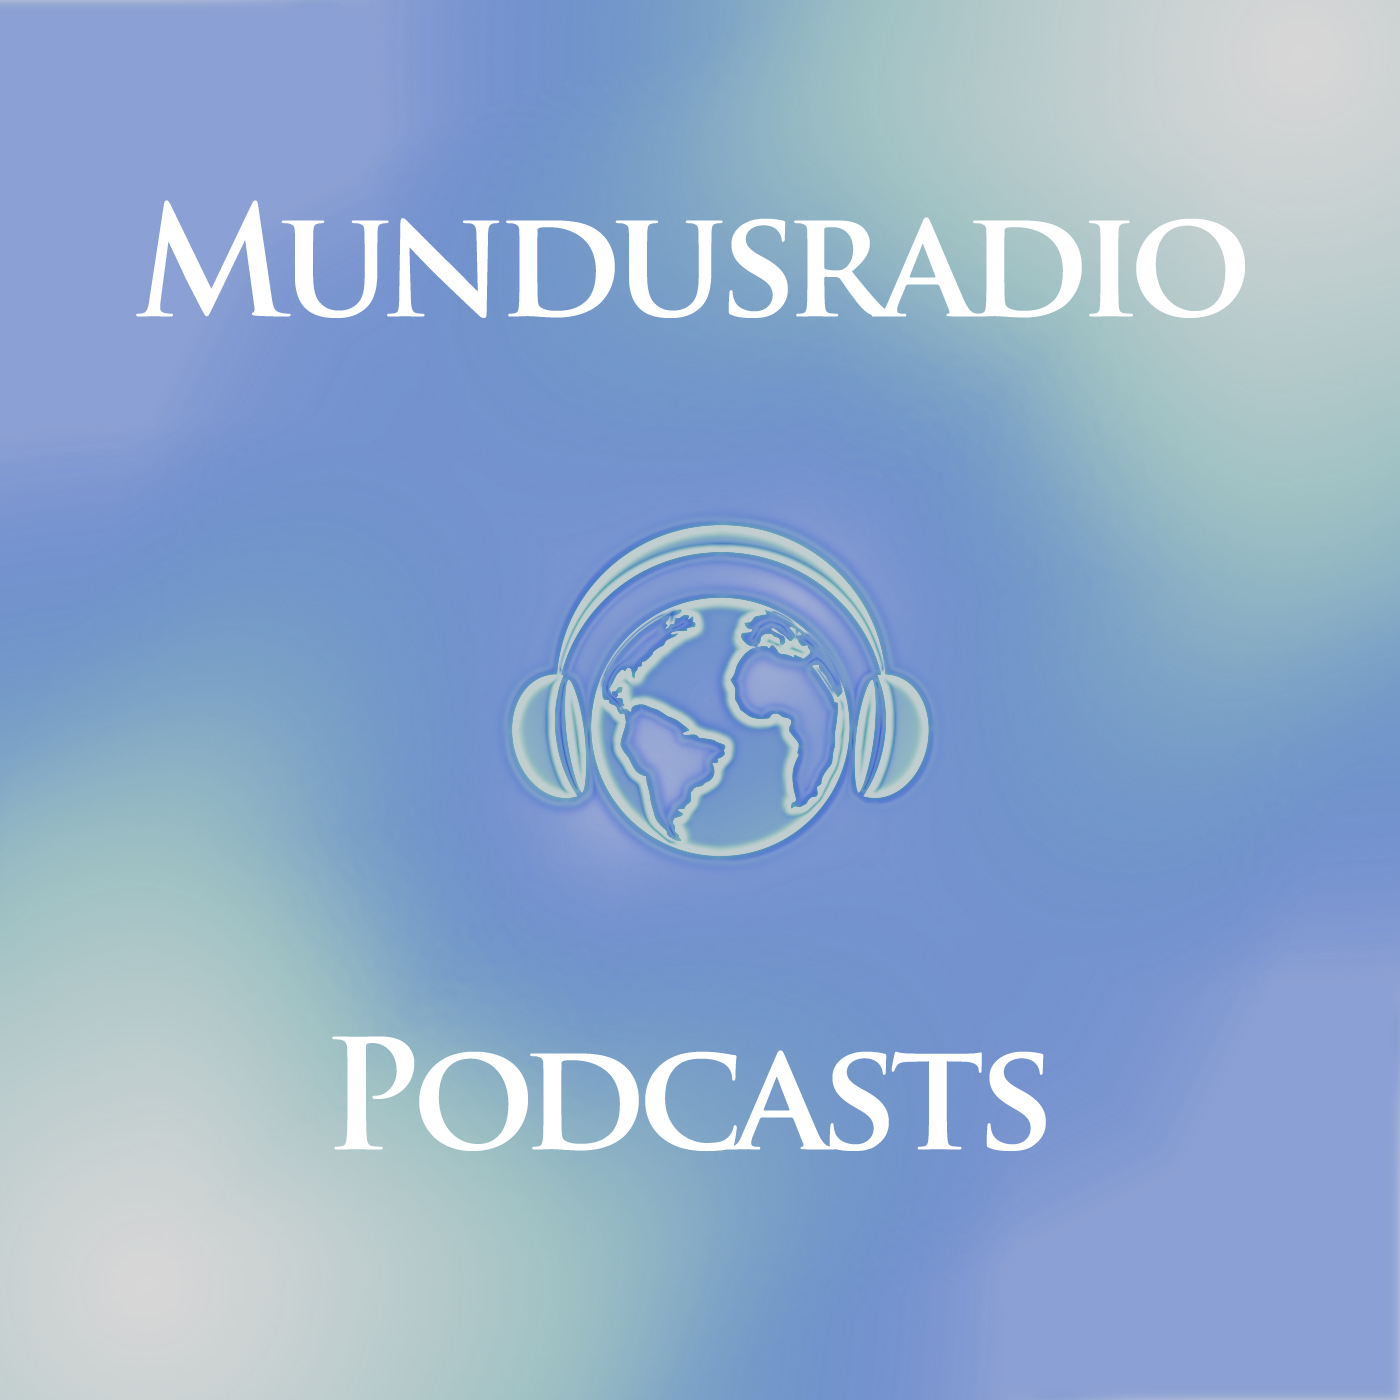 Mundusradio - Podcasts